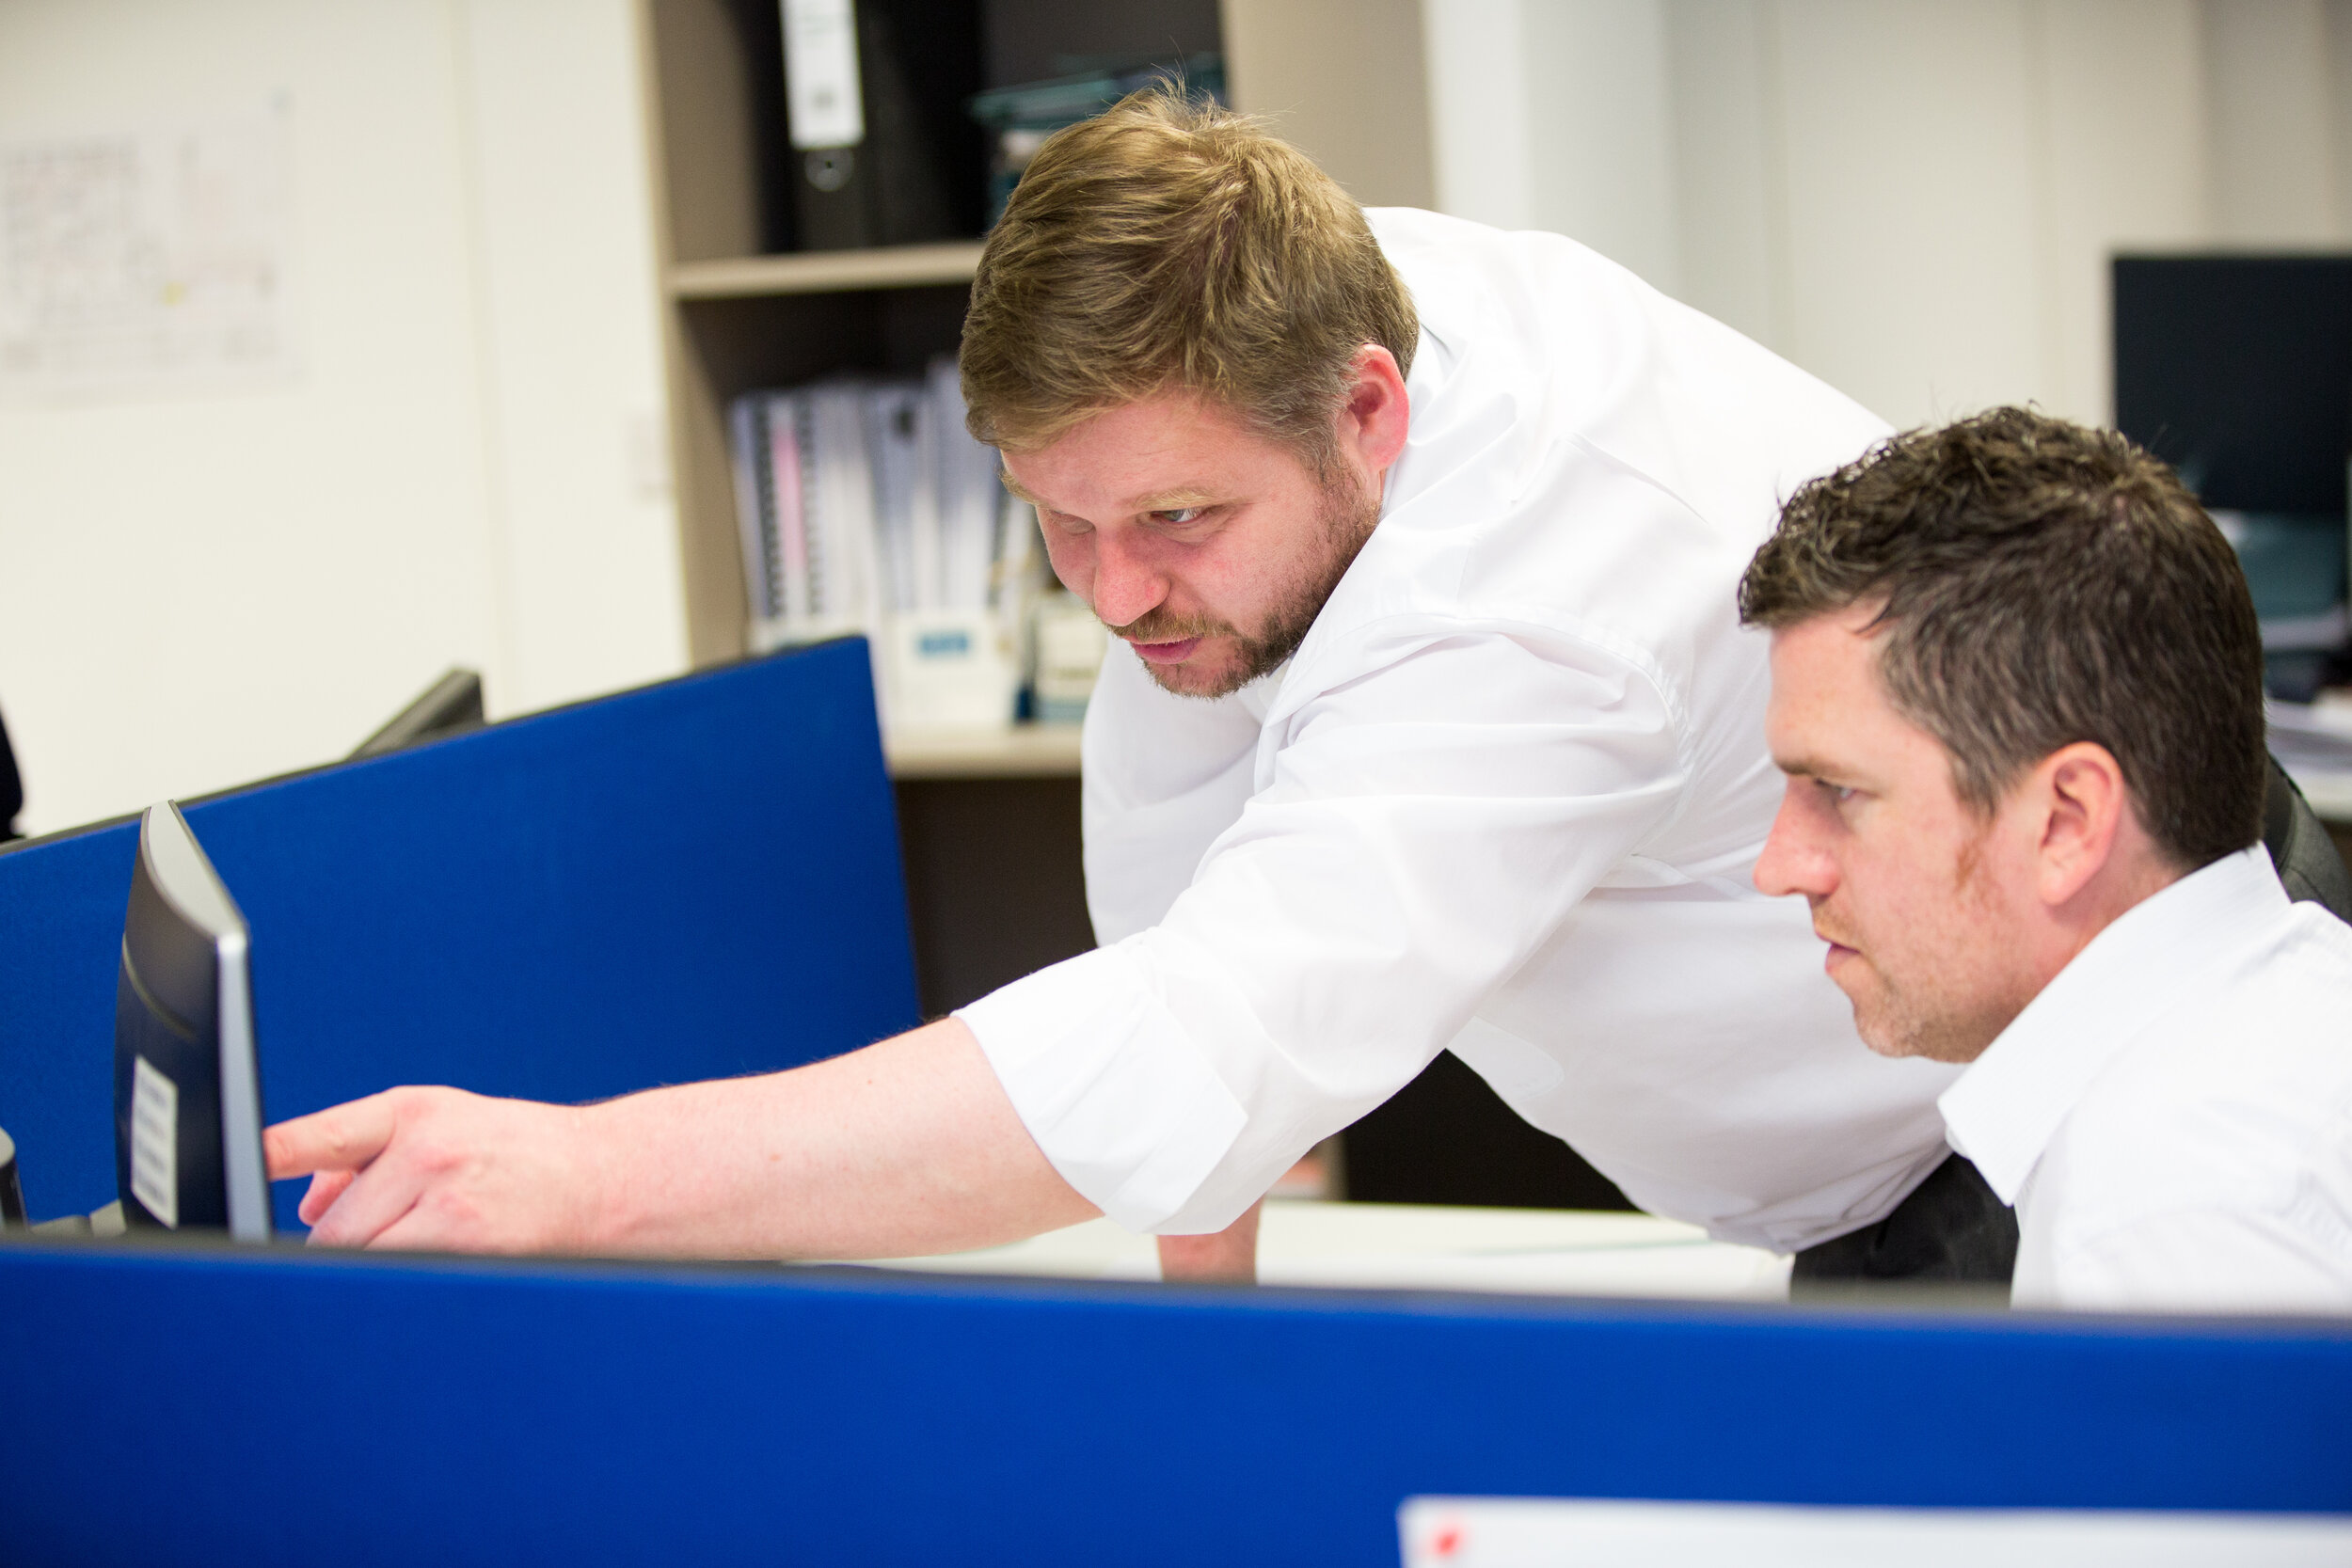 MENTORING - Graduates will receive dedicated mentor guidance from highly experienced Engineers.